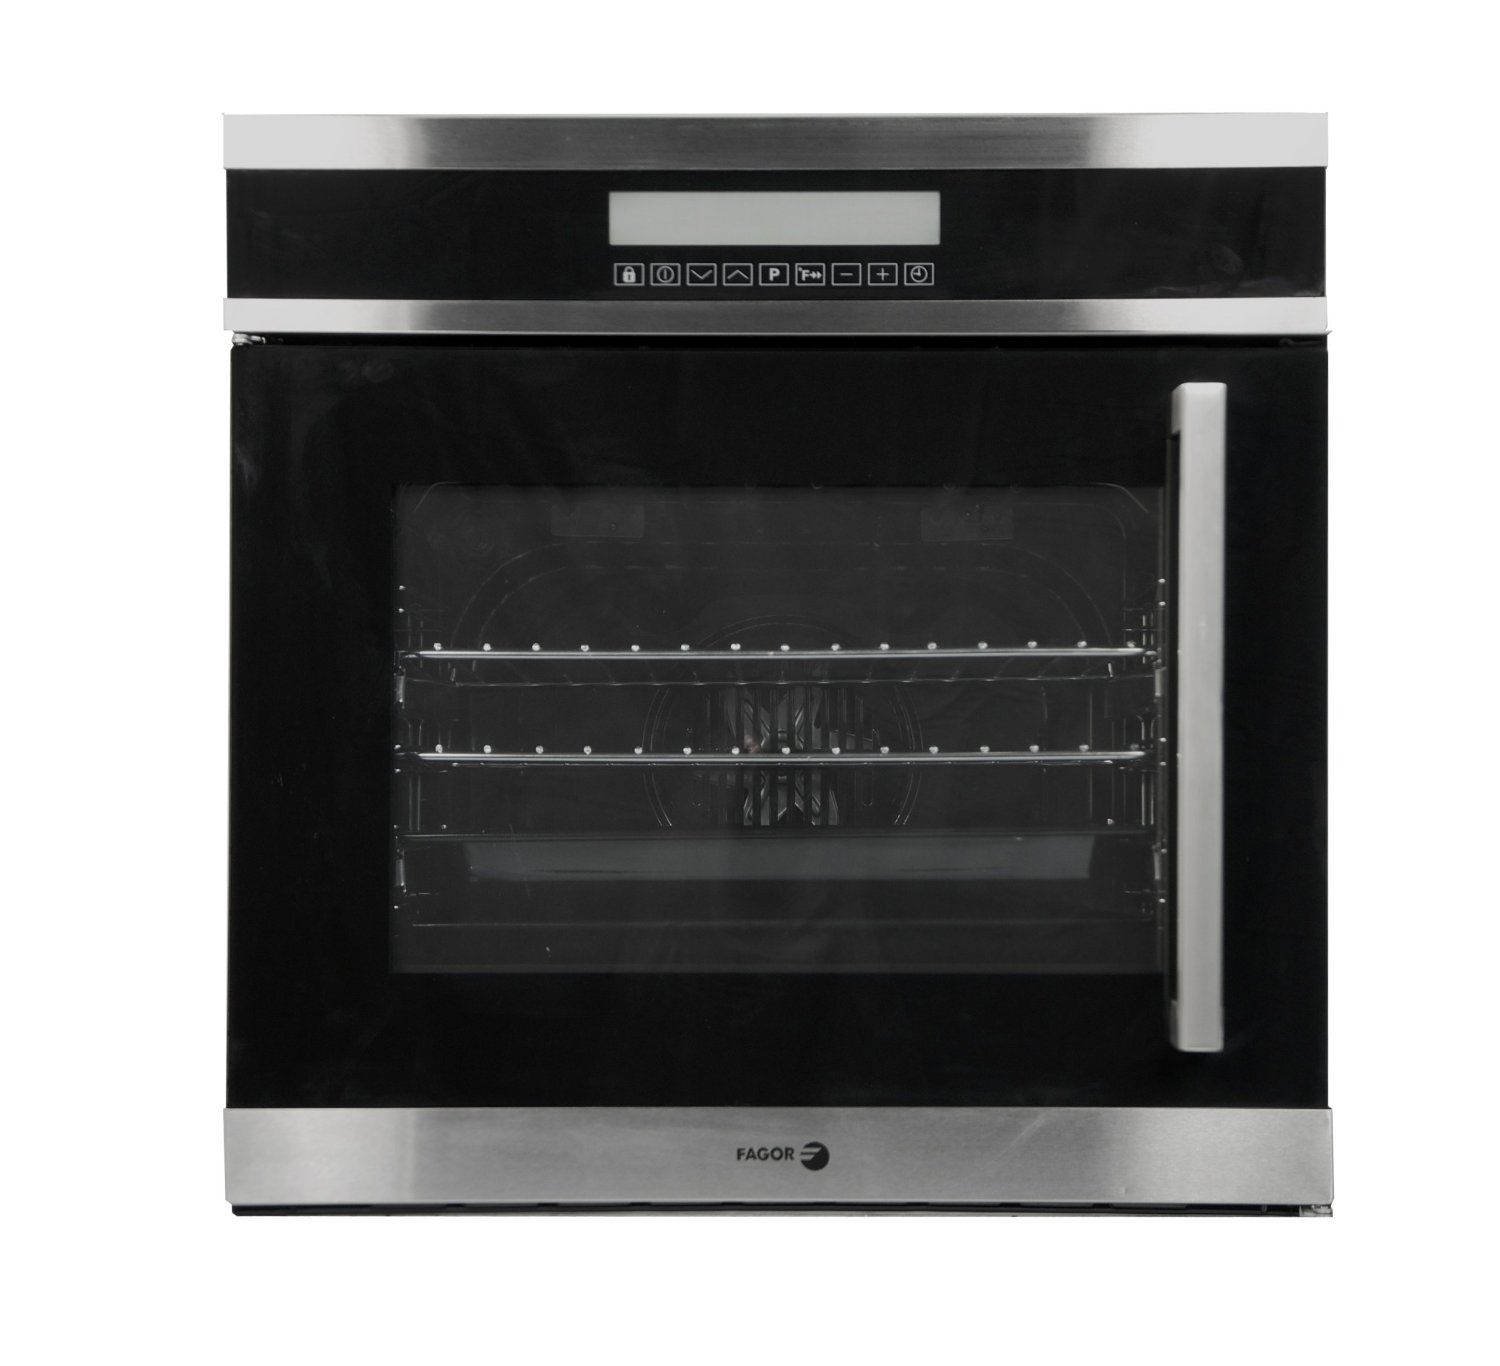 957 62 Or 6ha 200tlx Convection Wall Oven With Left Hand Touch